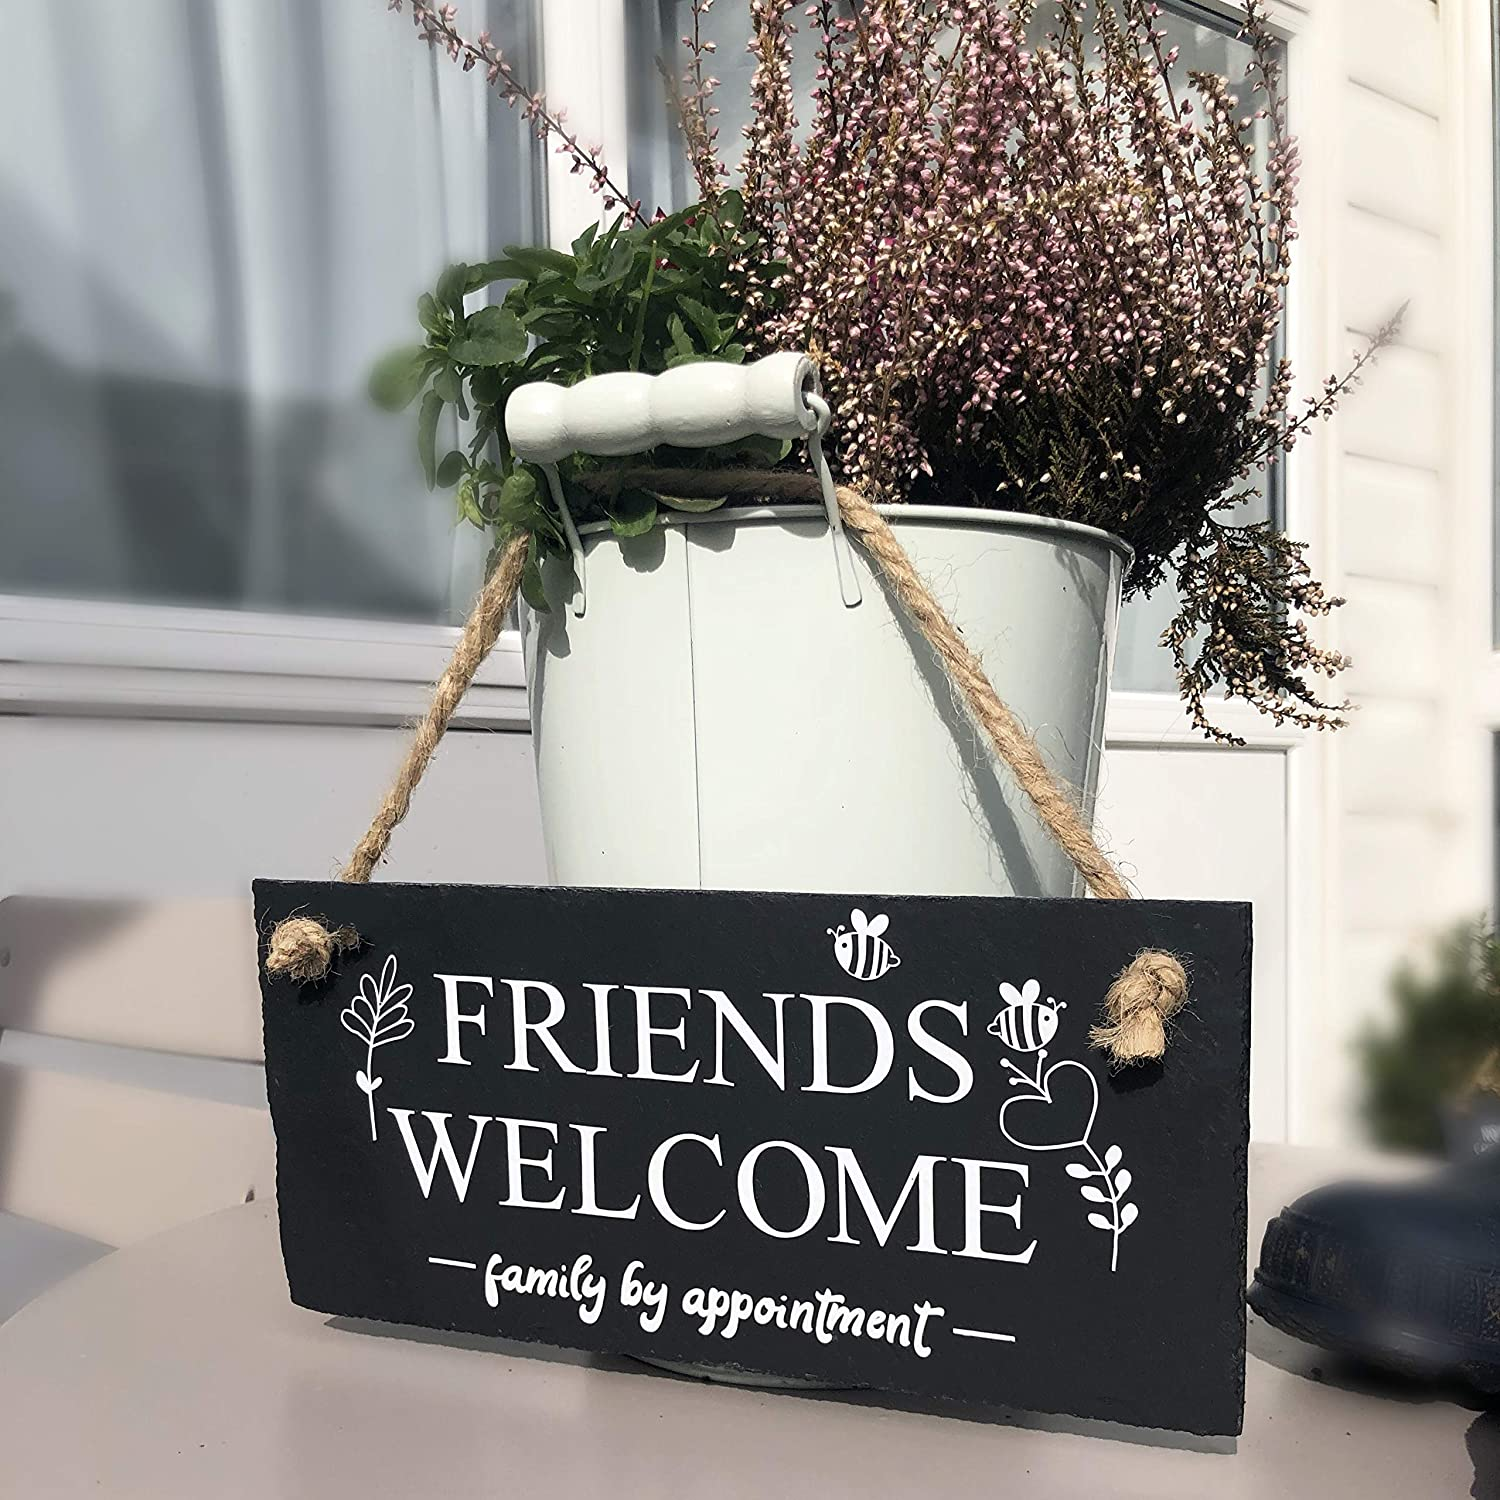 Friends welcome Family by appointment Hallway sign Wall sign for the home